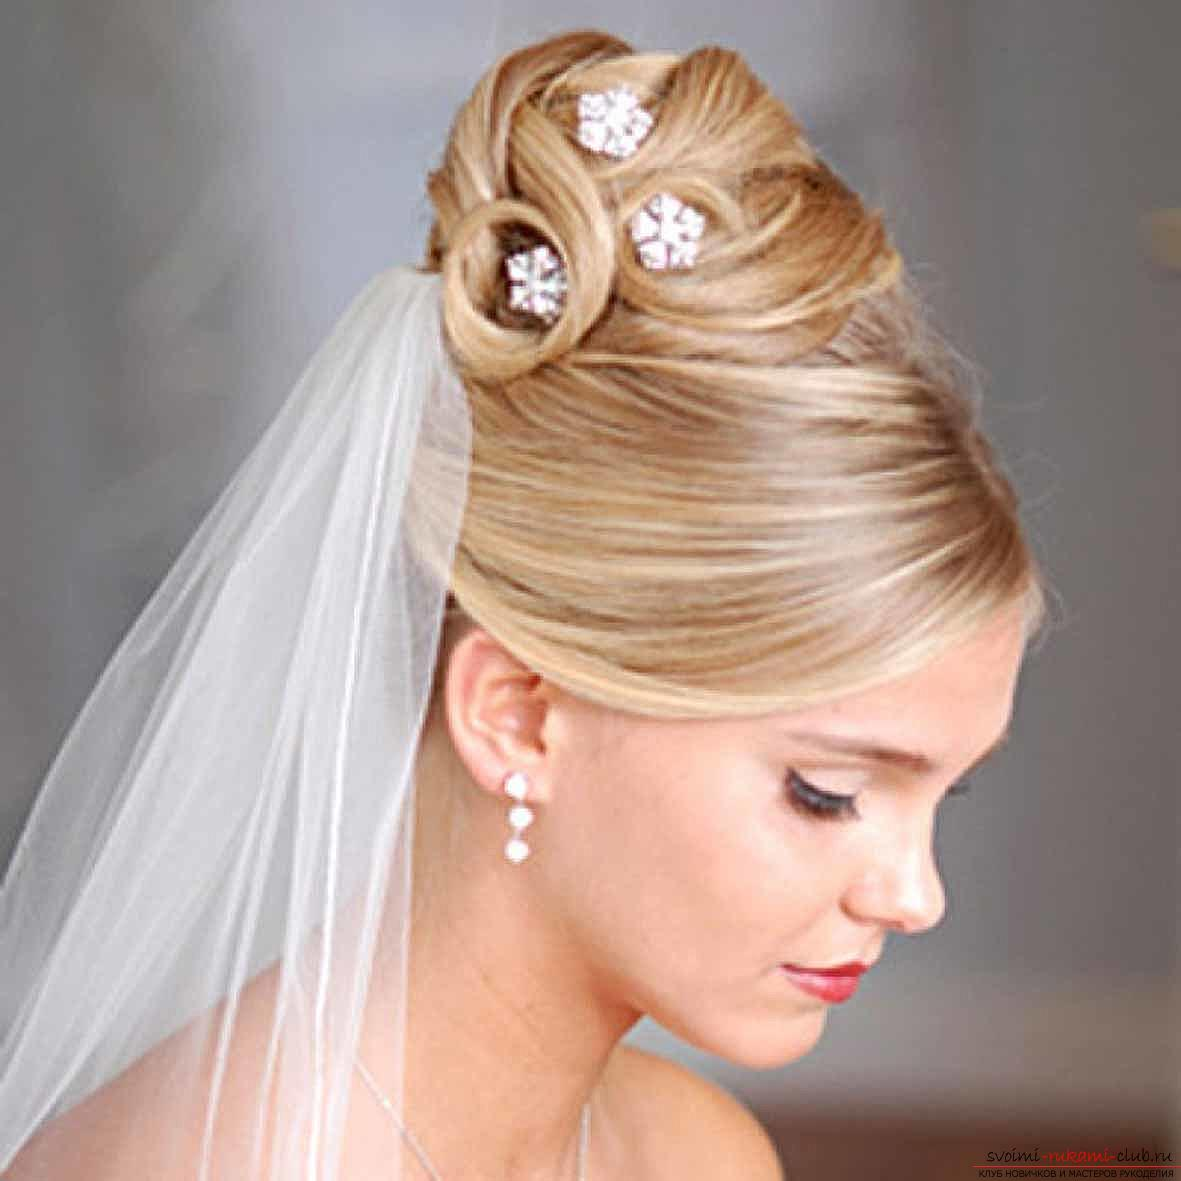 Hairstyles for the bride for the wedding with the veil. Photo №5